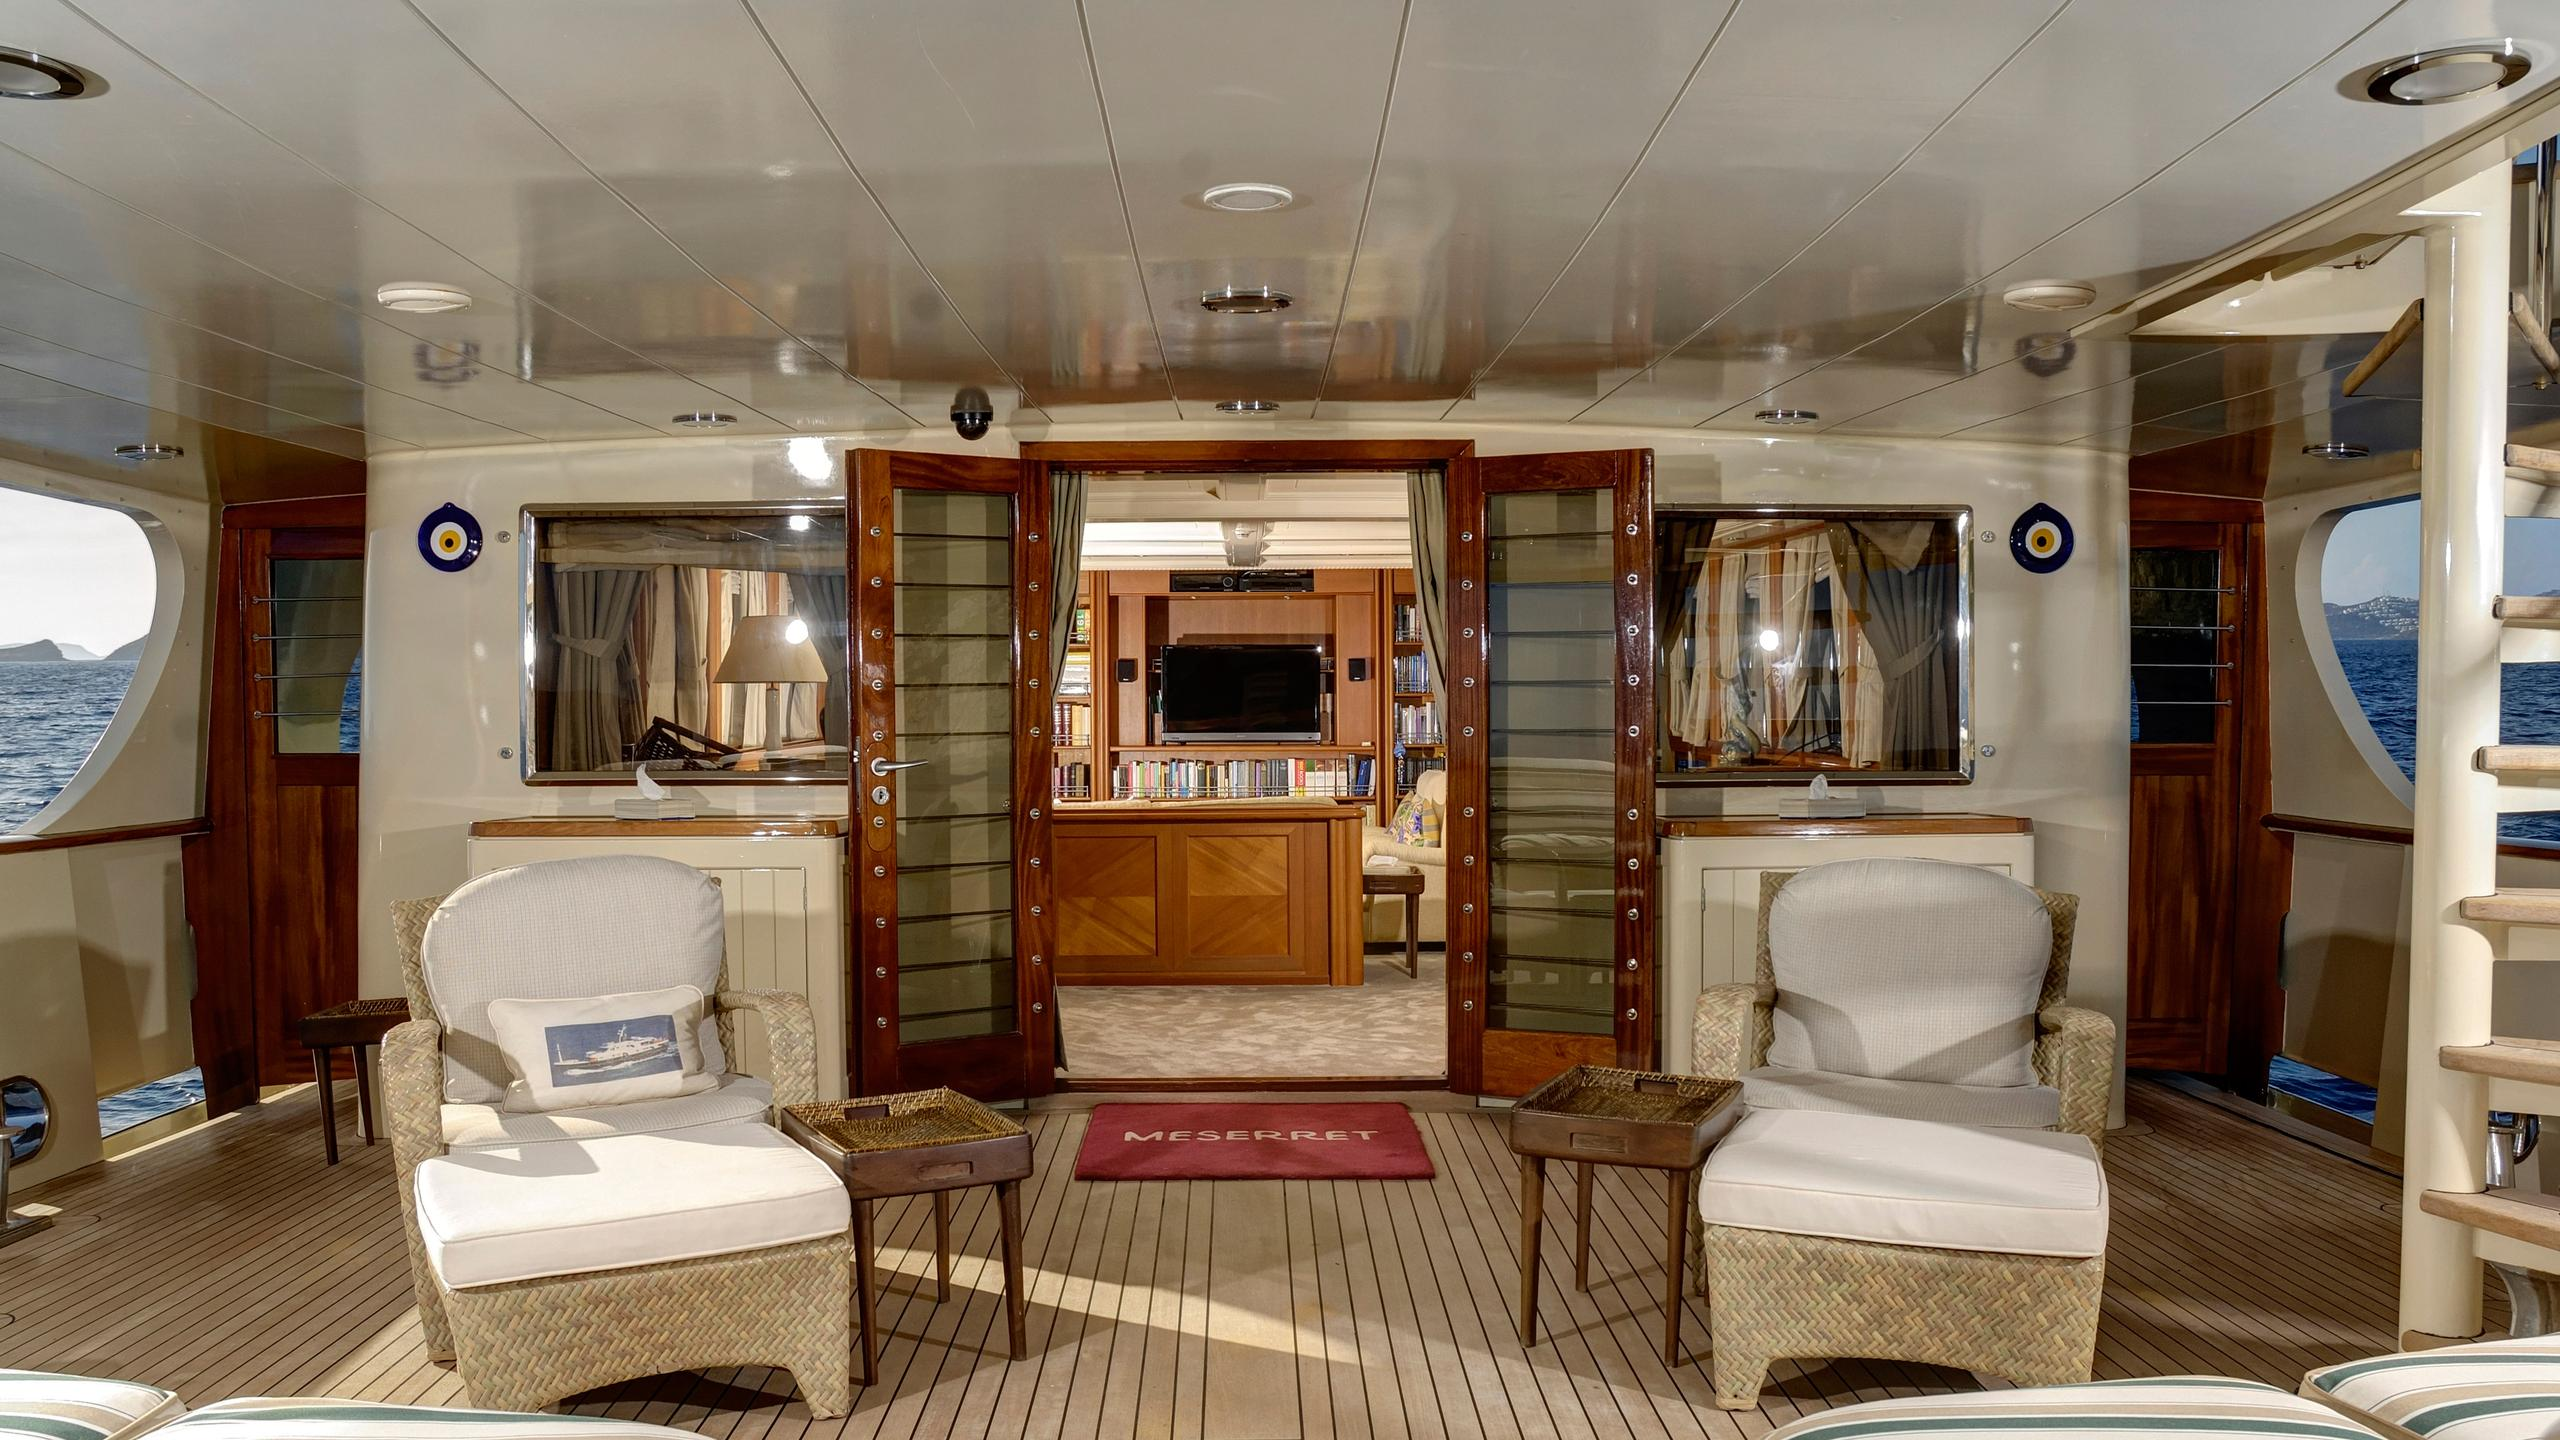 meserret-yacht-aft-seating